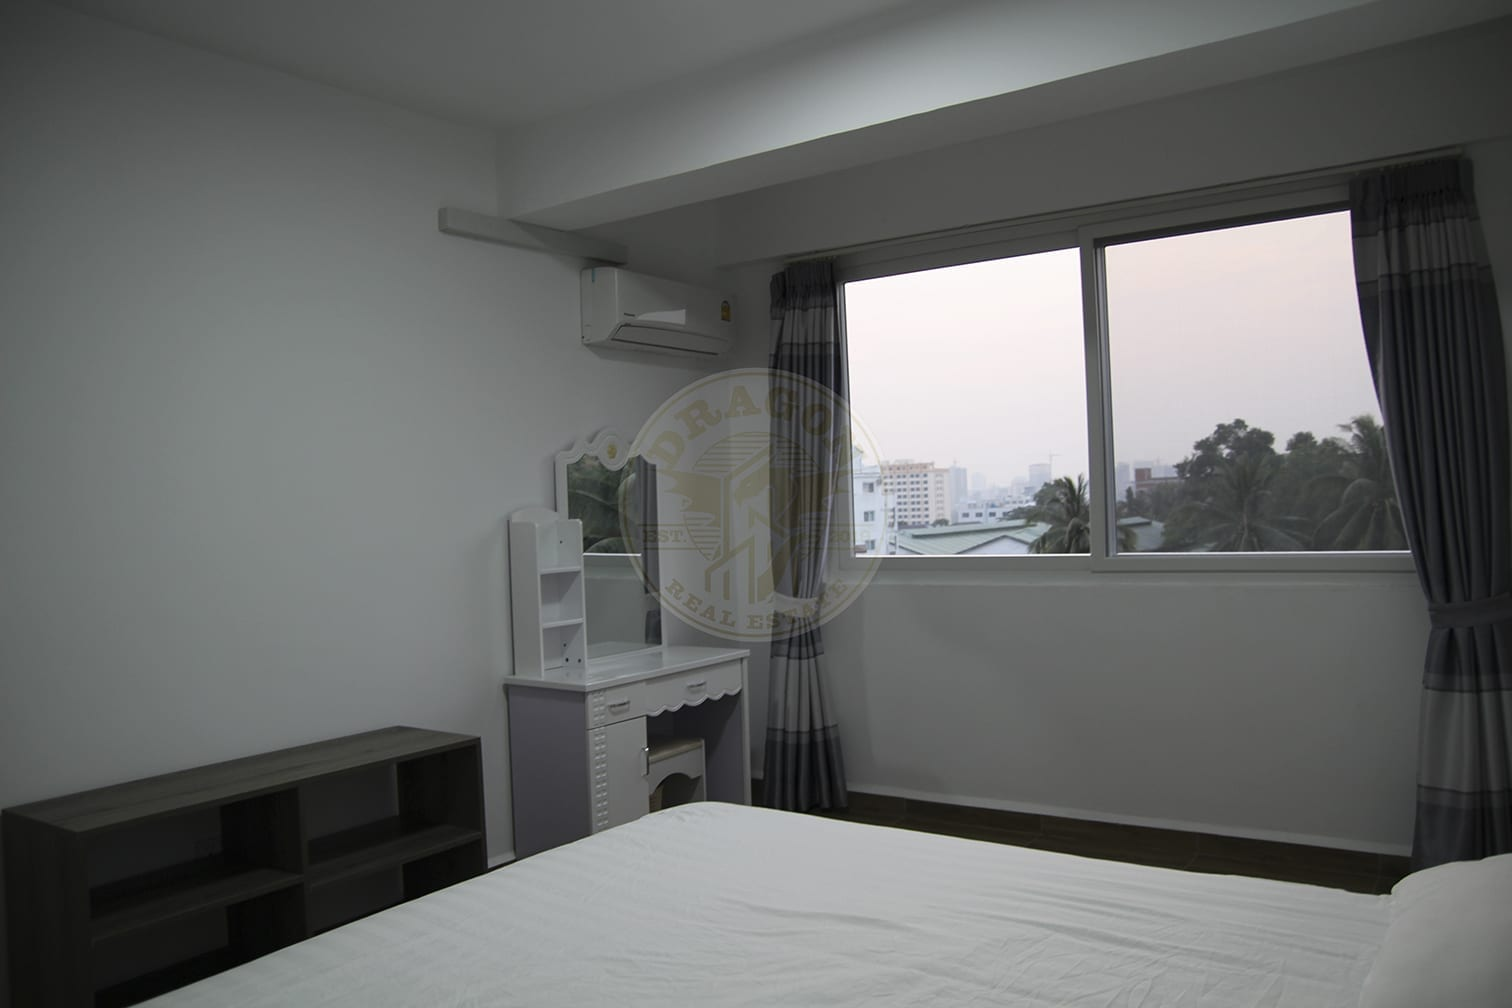 Location, Community, Quality Living Rent an Apartment in Sihanoukville. Sihanoukville Cambodia Property Sale